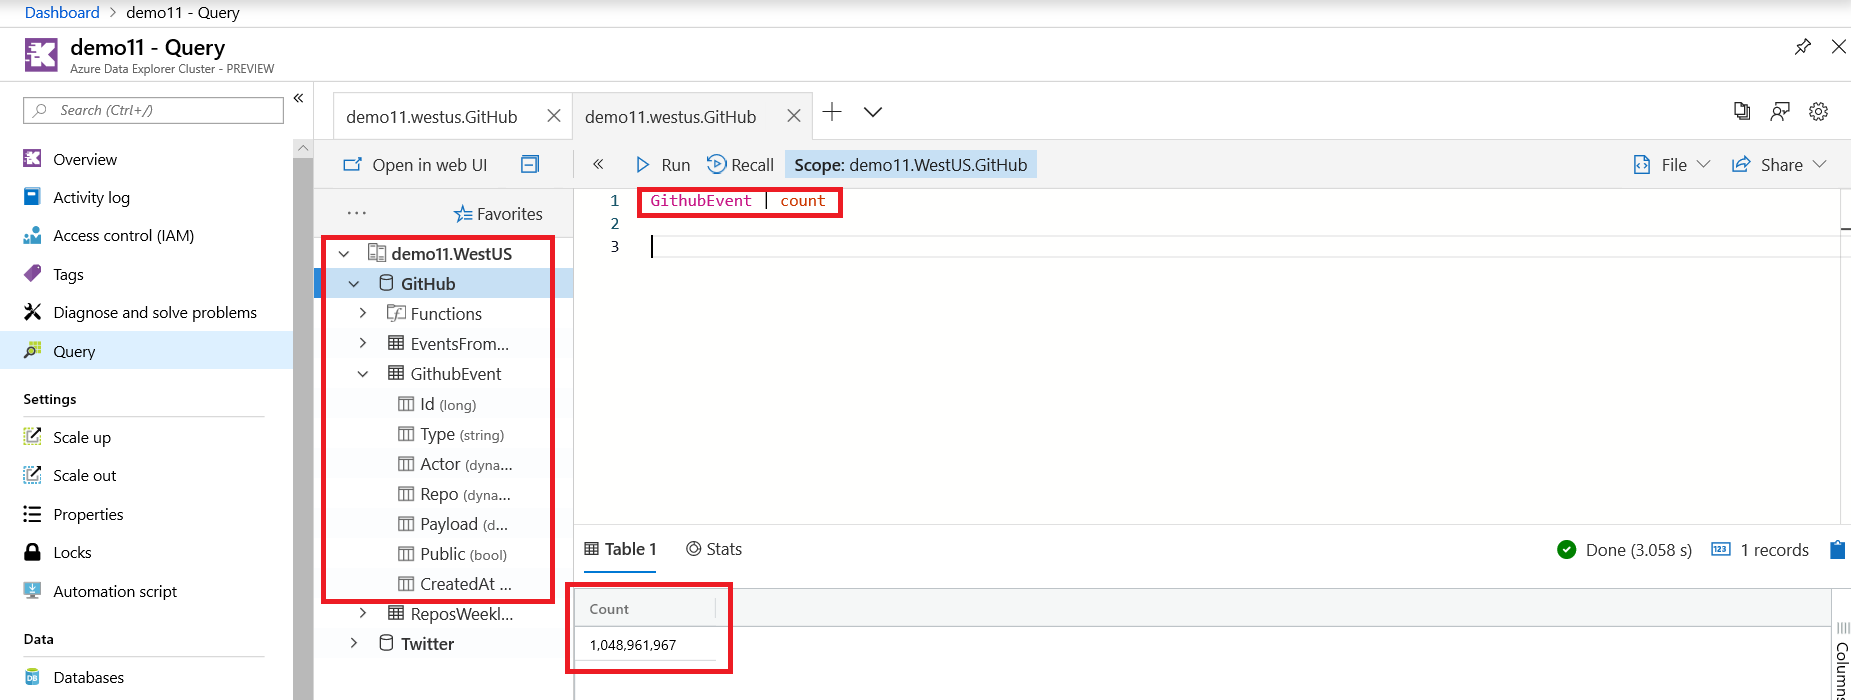 Screenshot of Azure Data Explorer demo11 and GitHub database